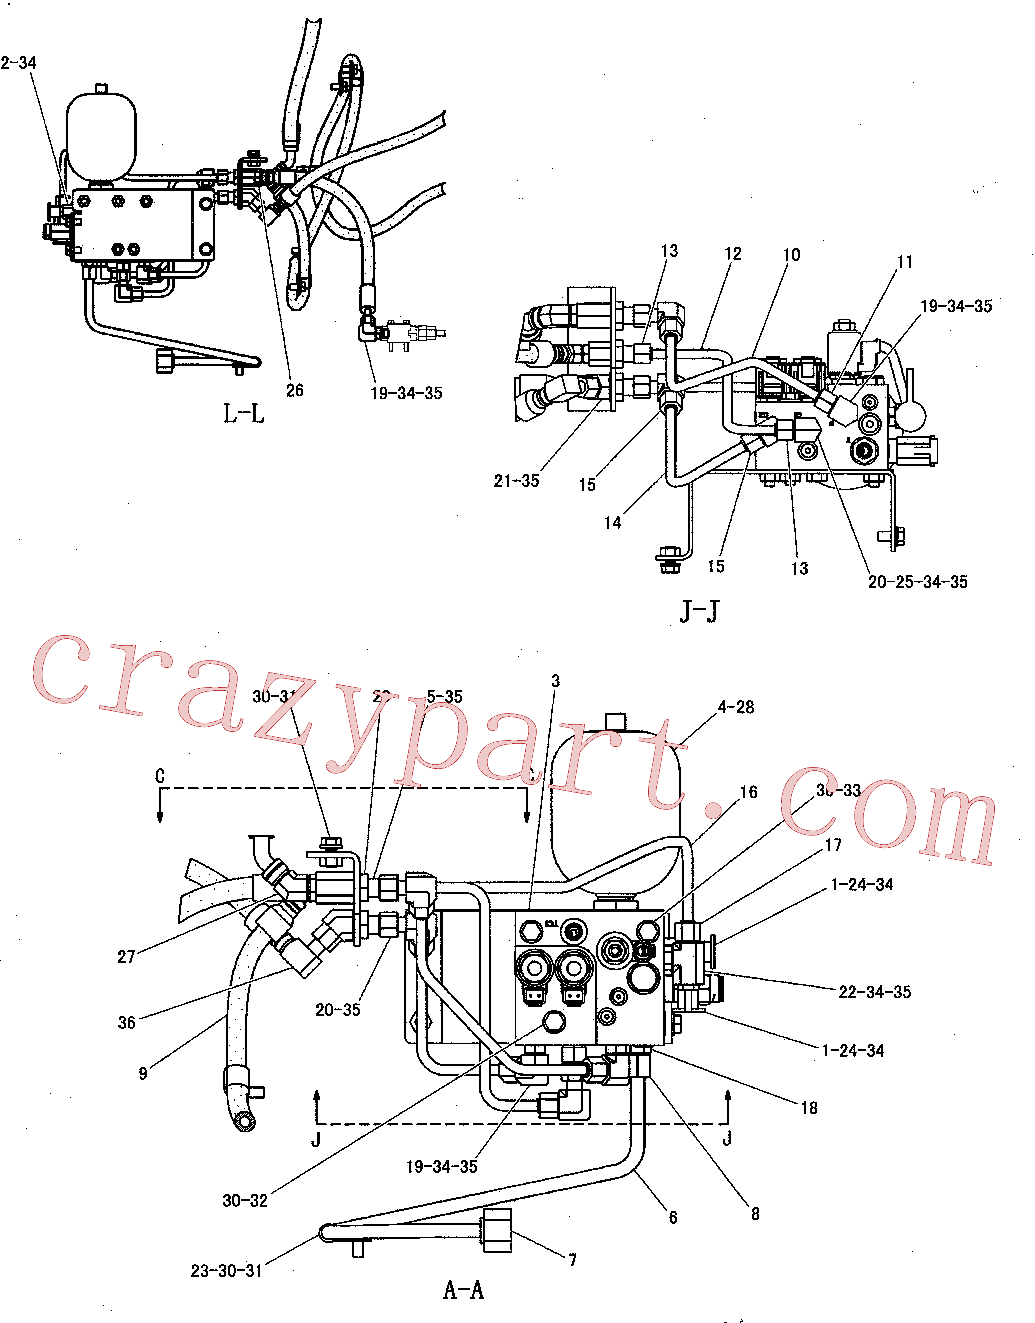 CAT 7W-7381 for CS-56 Vibratory Compactor(COMP) power train 260-8836 Assembly